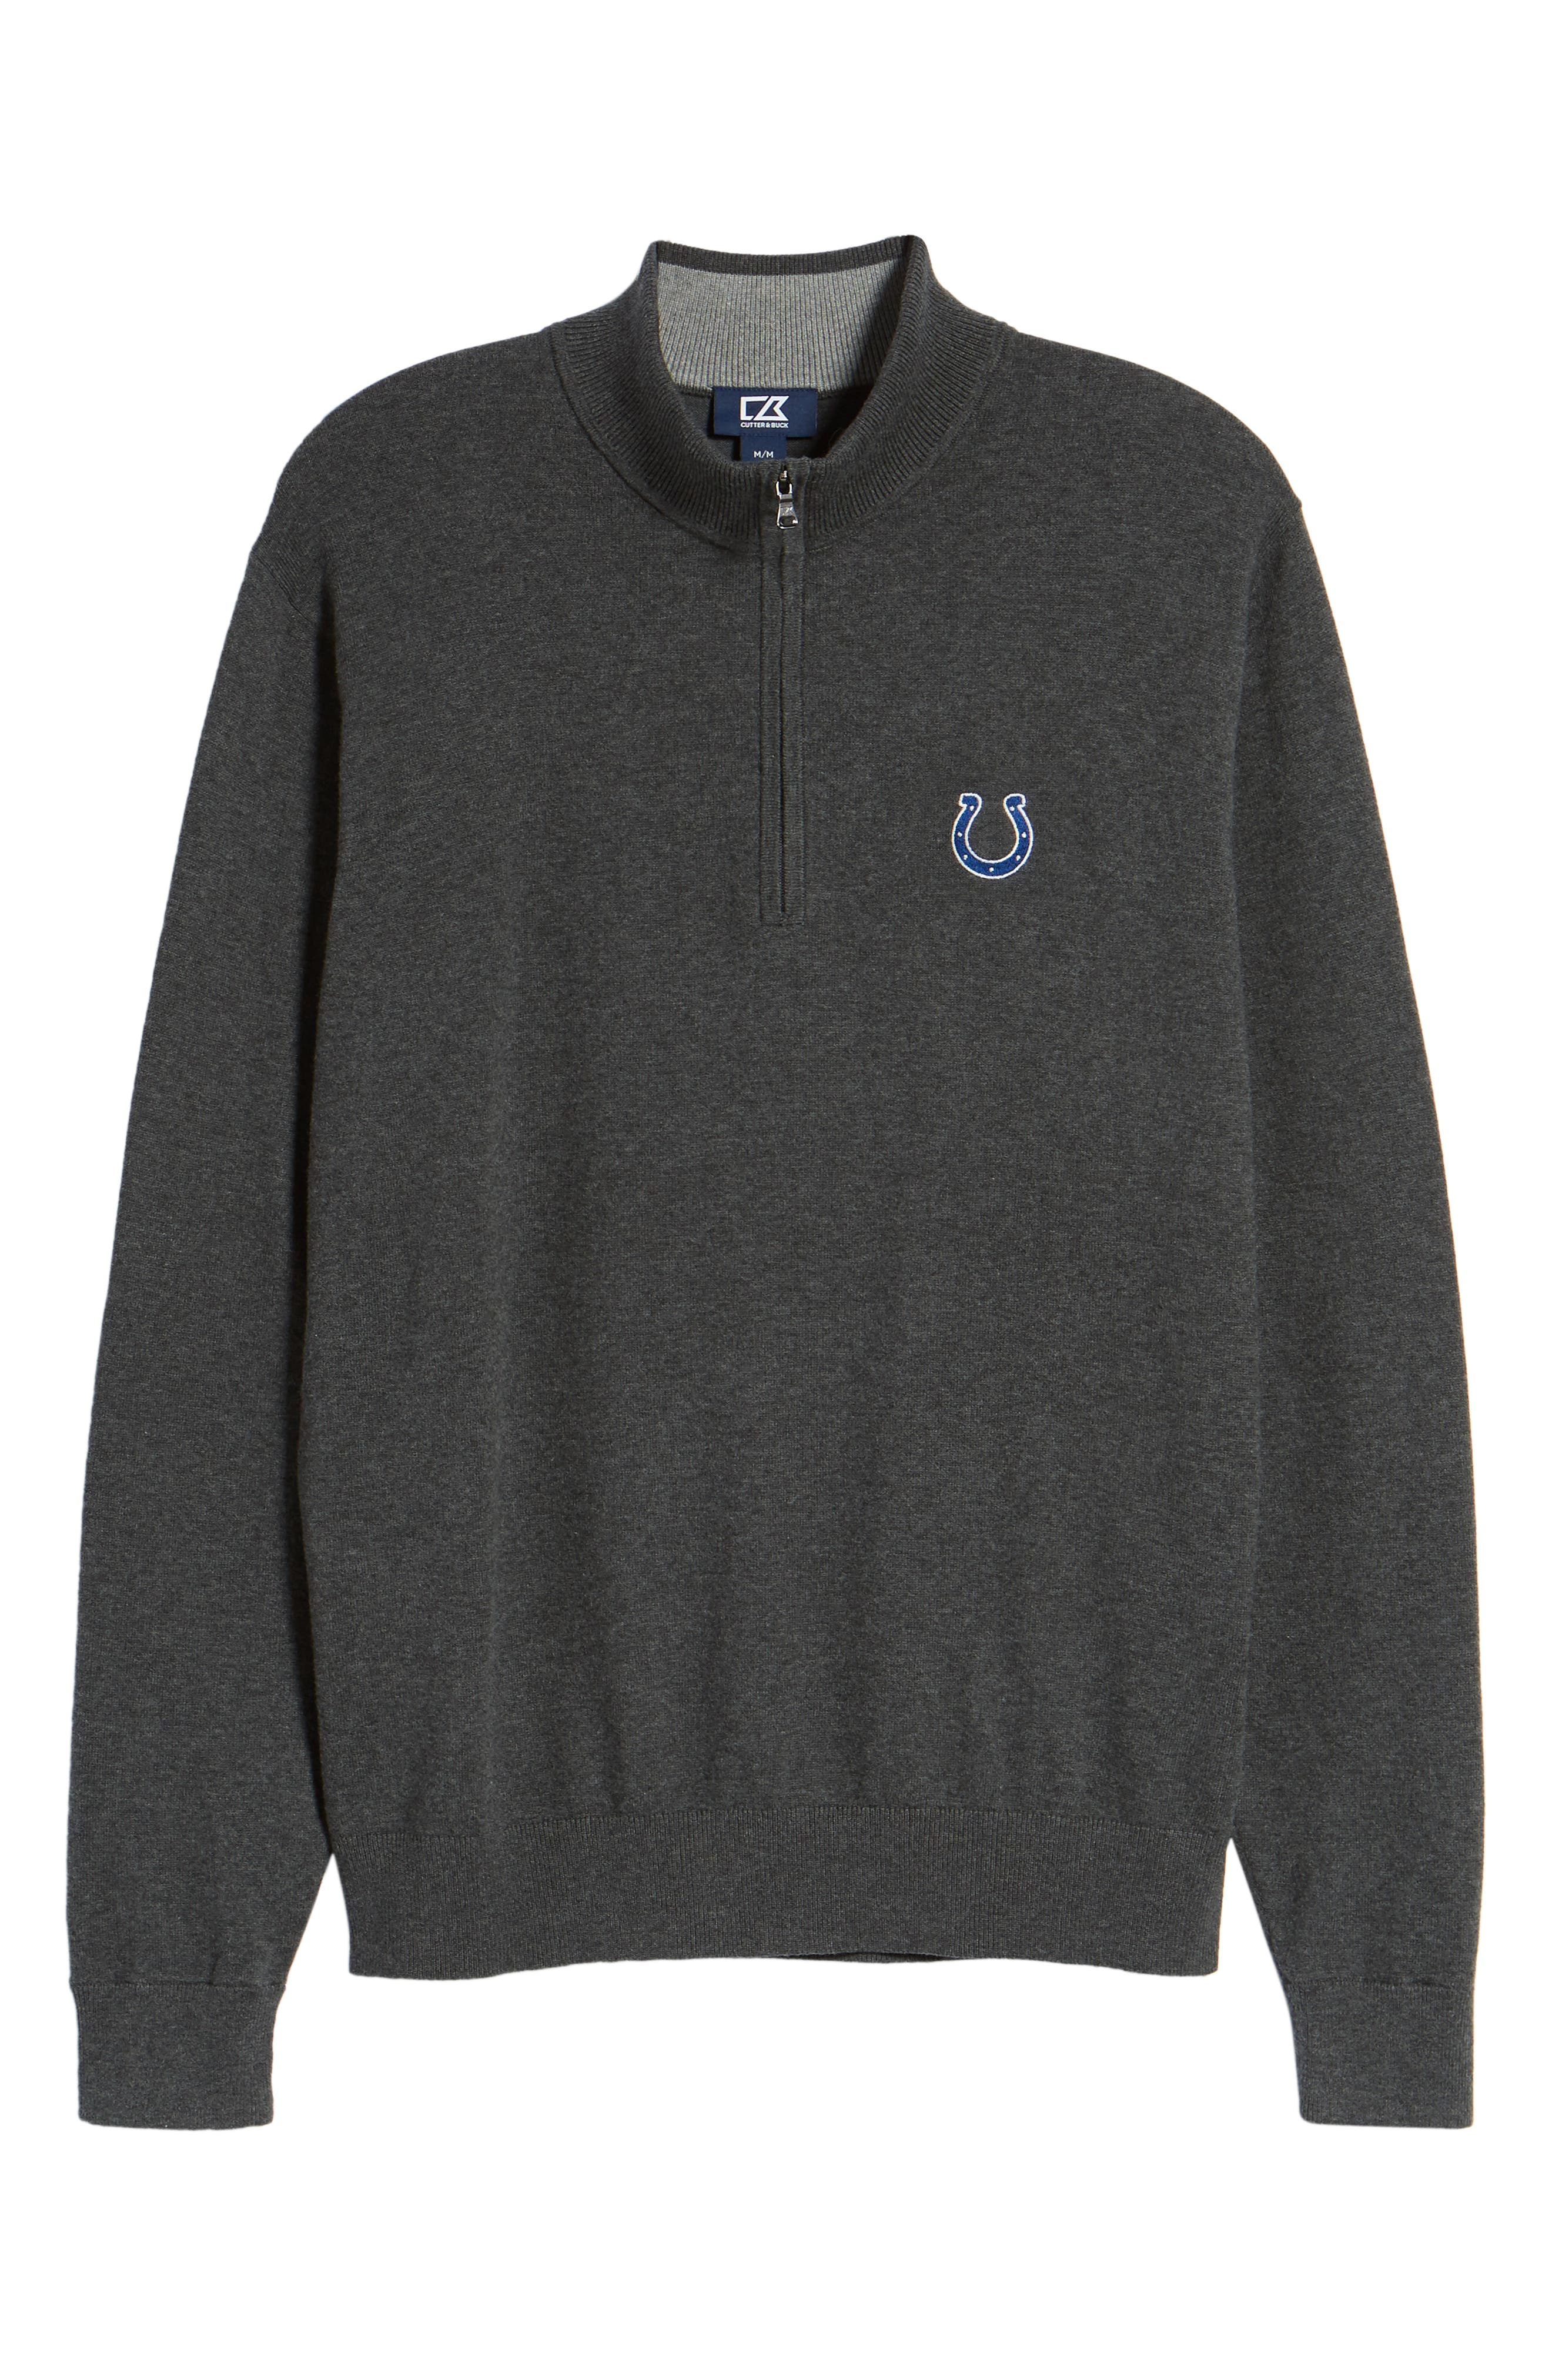 CUTTER & BUCK,                             Indianapolis Colts - Lakemont Regular Fit Quarter Zip Sweater,                             Alternate thumbnail 6, color,                             CHARCOAL HEATHER